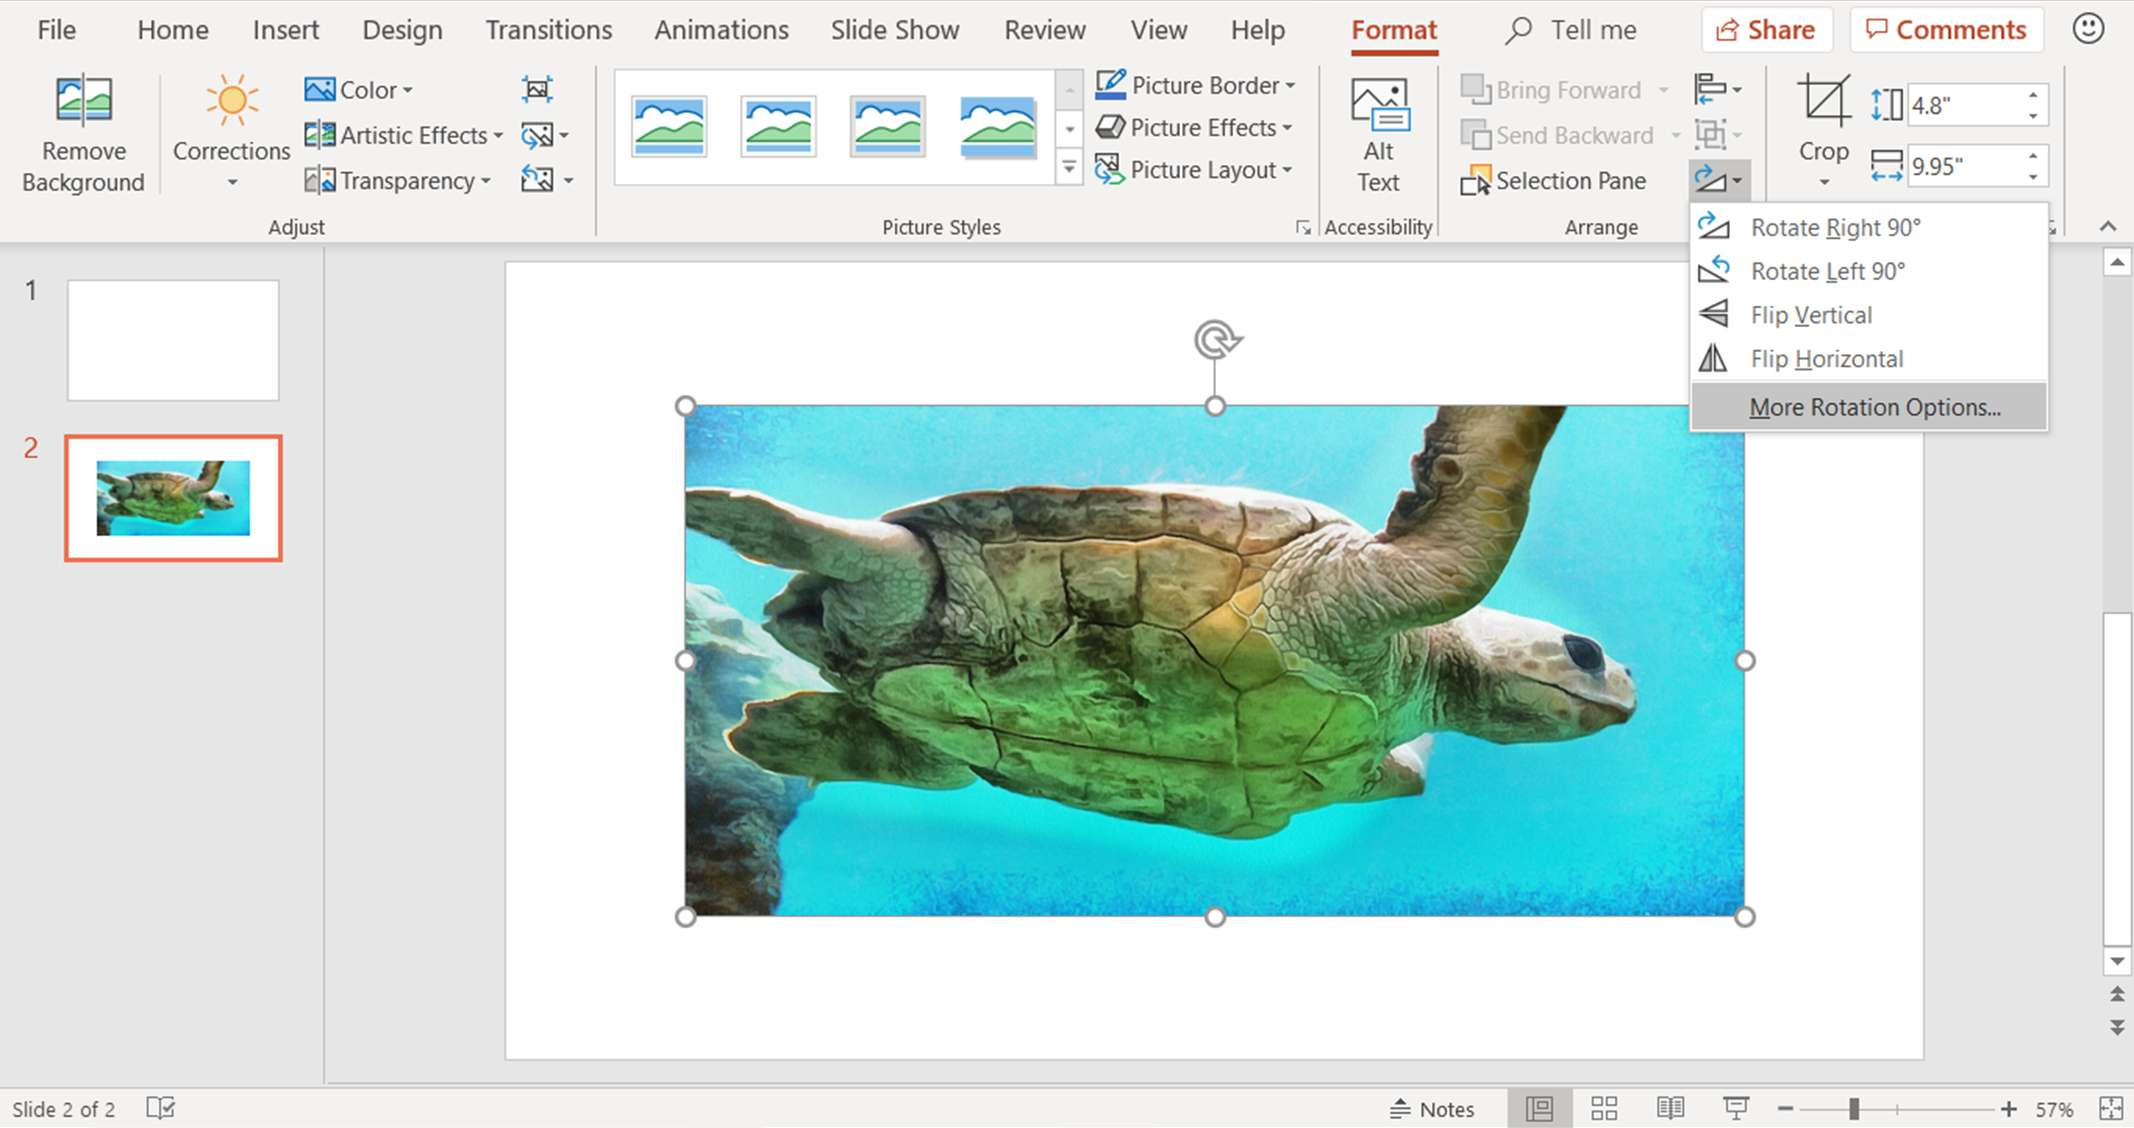 A screenshot showing how to find more rotation options for an image in a PowerPoint presentation